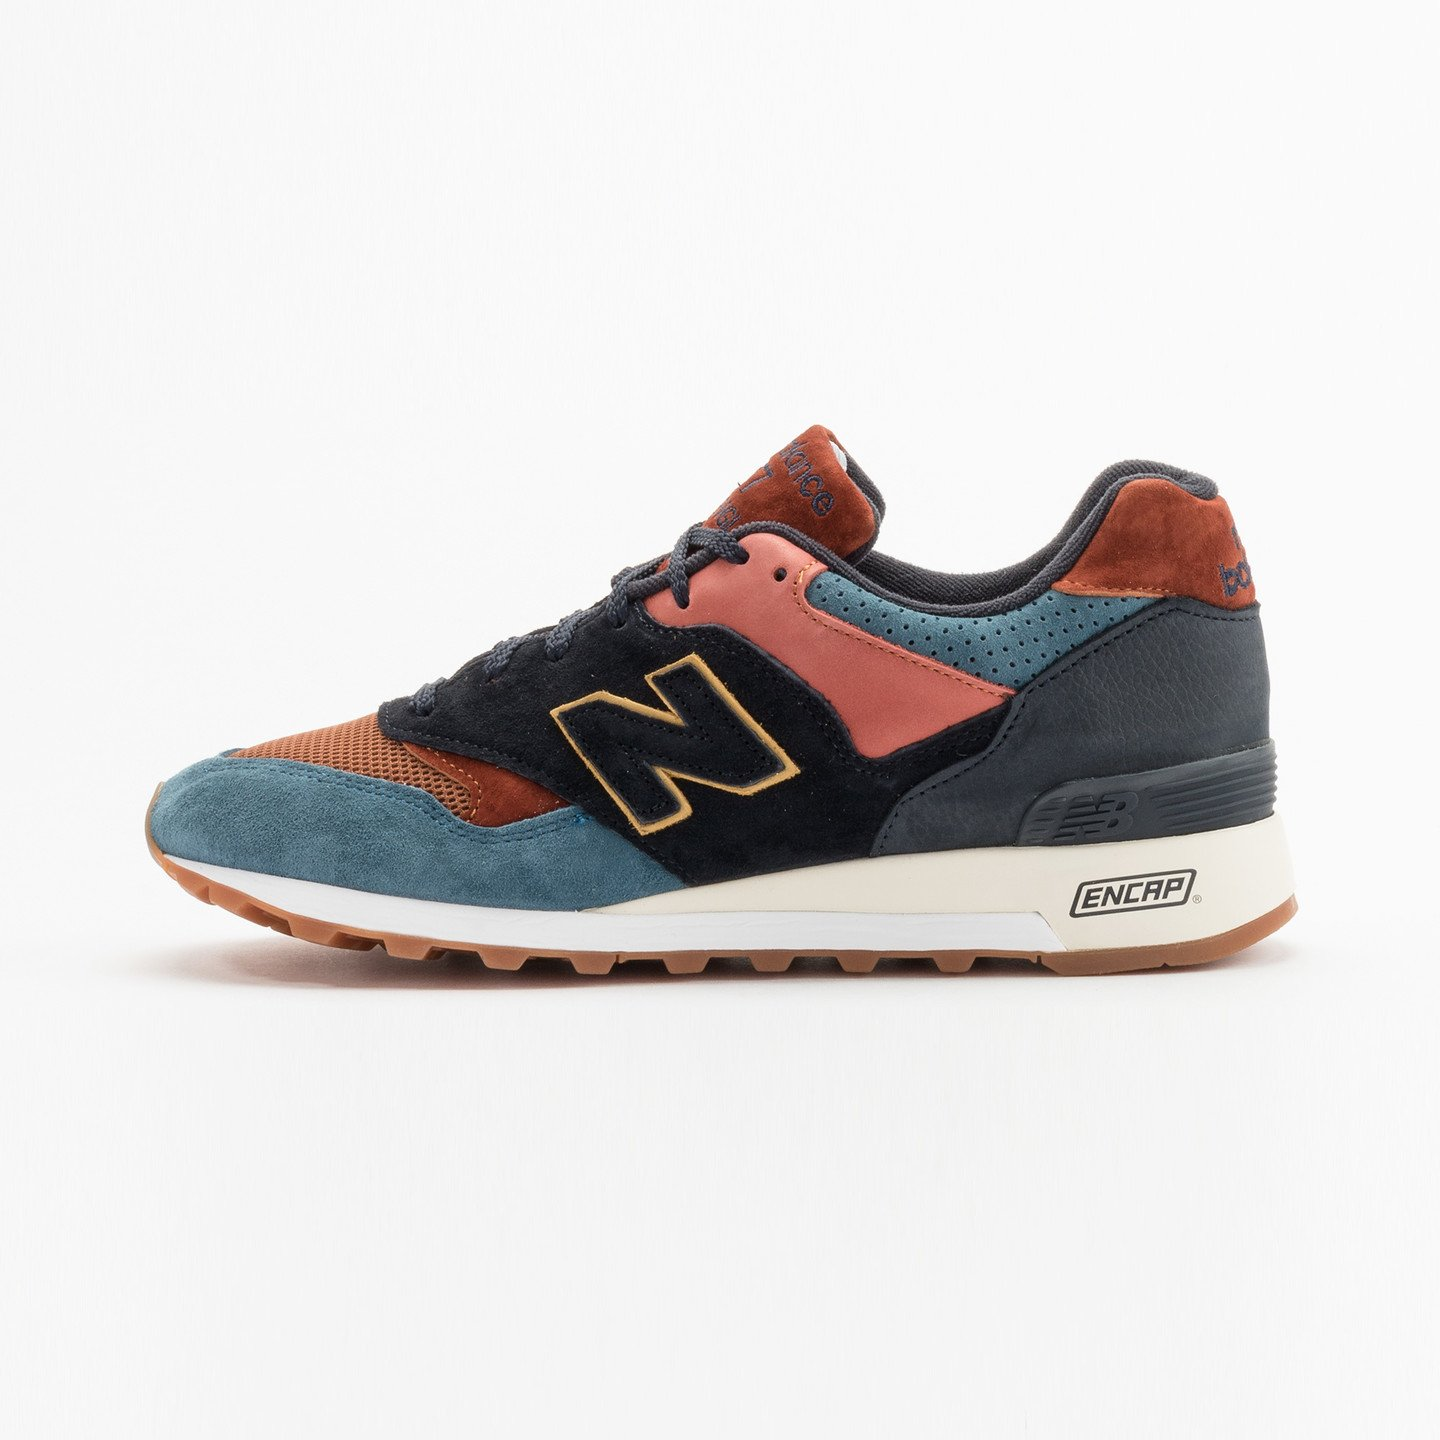 New Balance M577 YP Made in UK 'Yard Pack' Multicolor M577YP-42.5